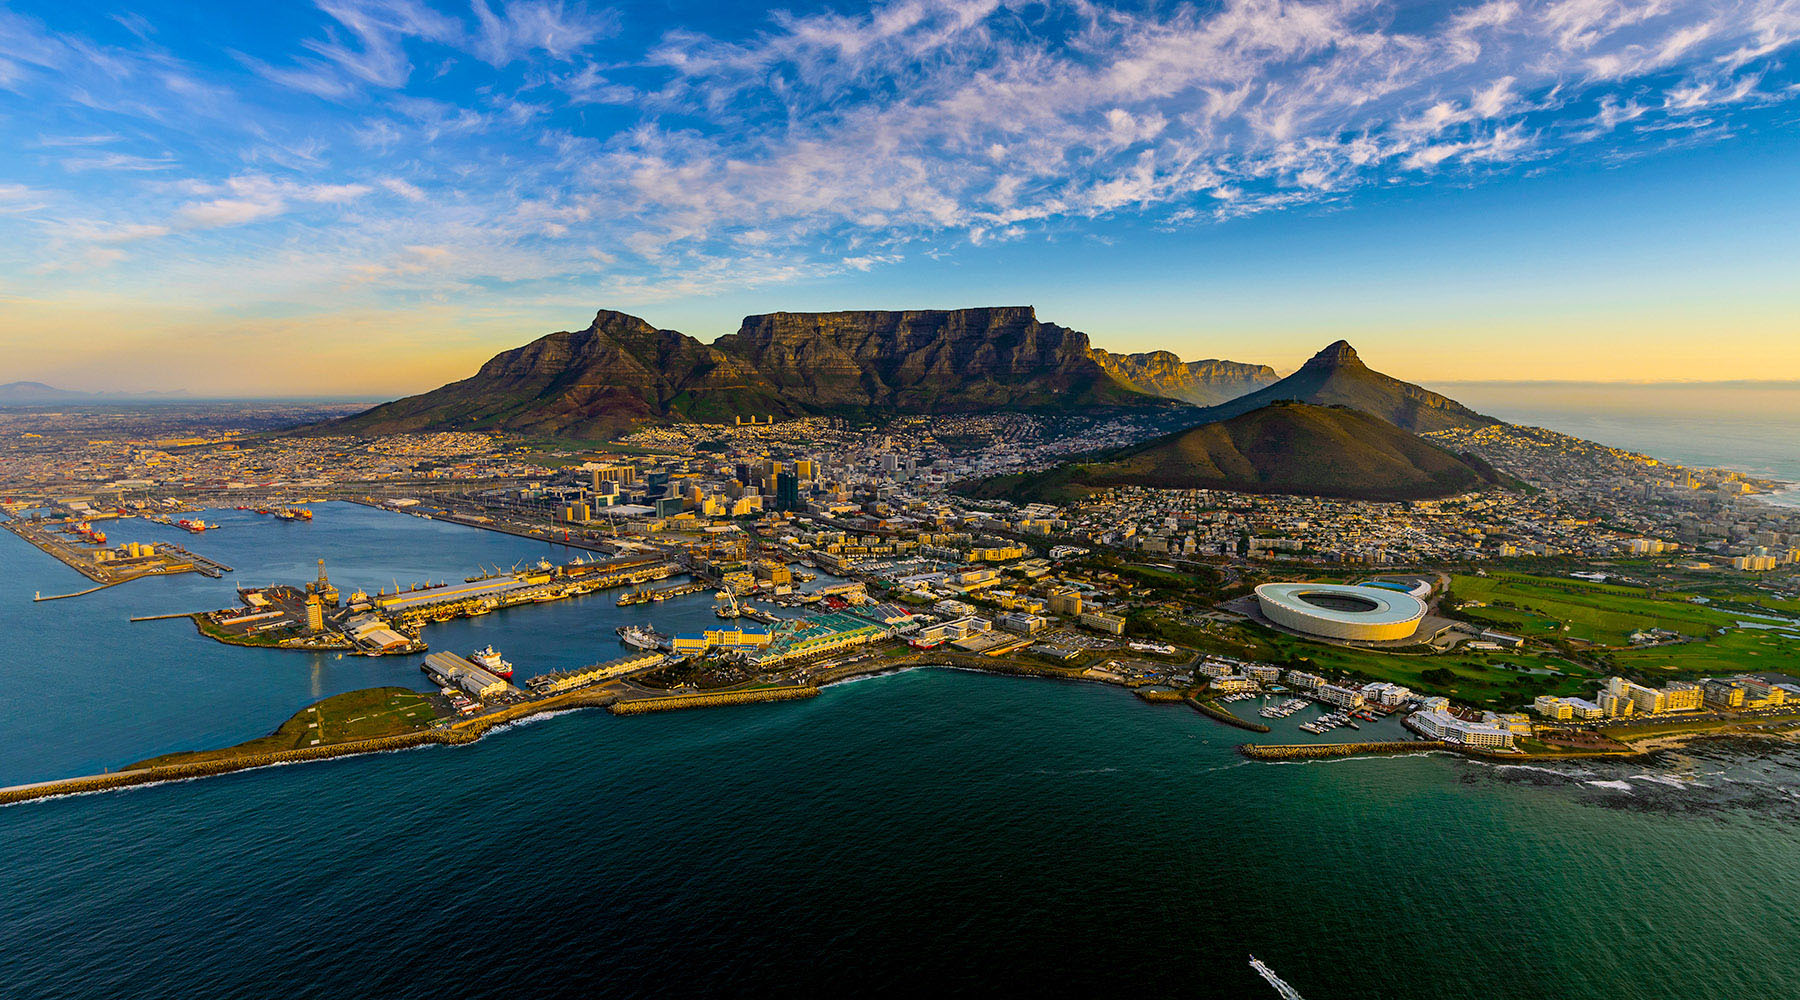 13-Night South Africa Intensive Voyage